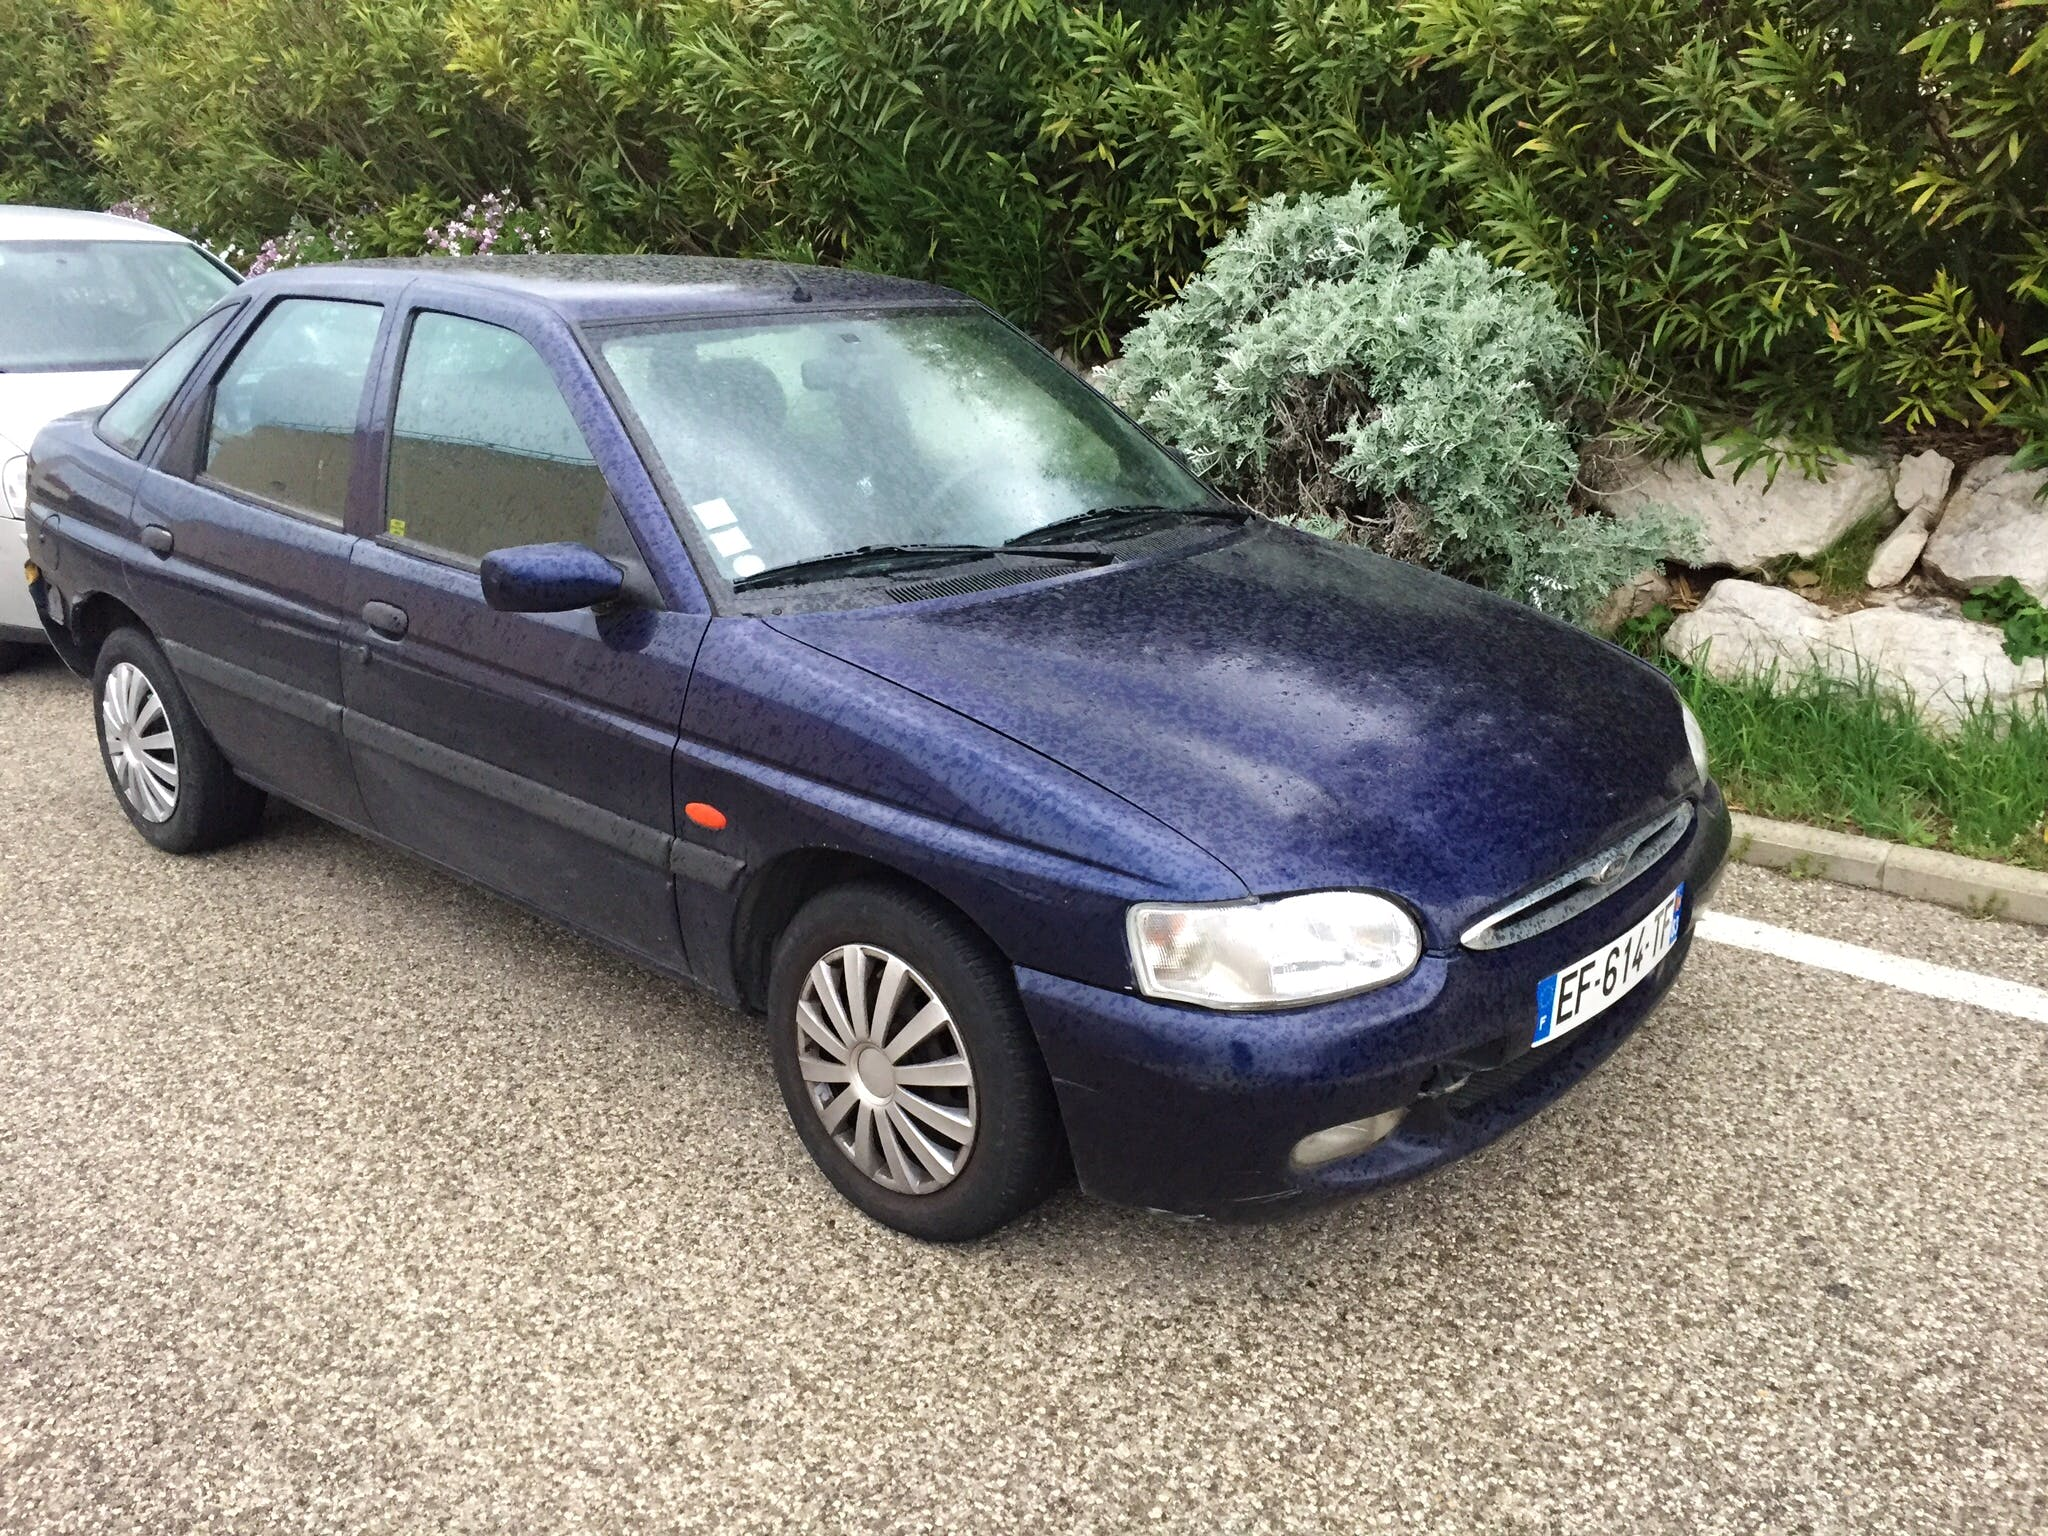 Ford Escort 1.6 essence, 1998, Essence